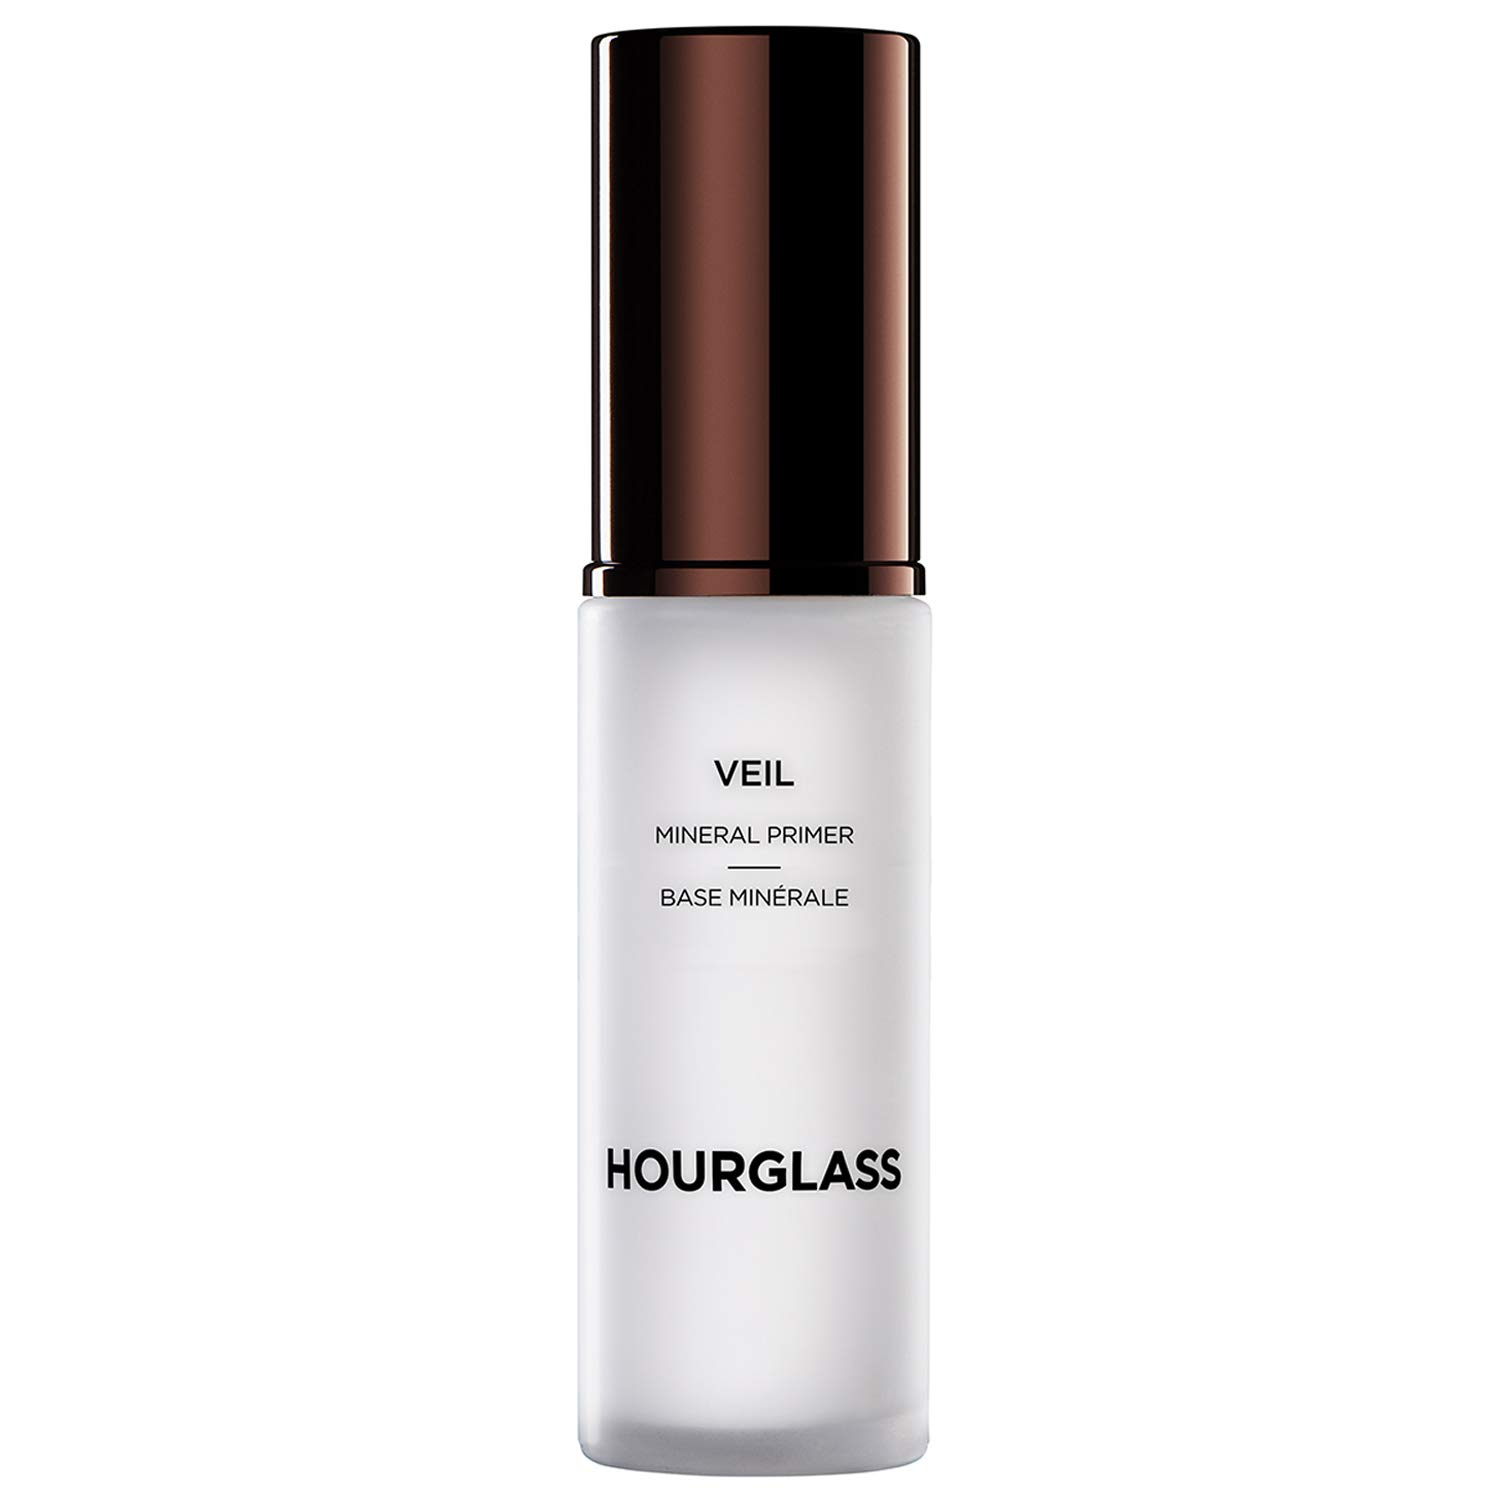 Hourglass Veil Mineral Primer. All Day Oil-Free Makeup Primer with SPF 15. Vegan and Cruelty-Free. (1 Ounce). by Hourglass Cosmetics